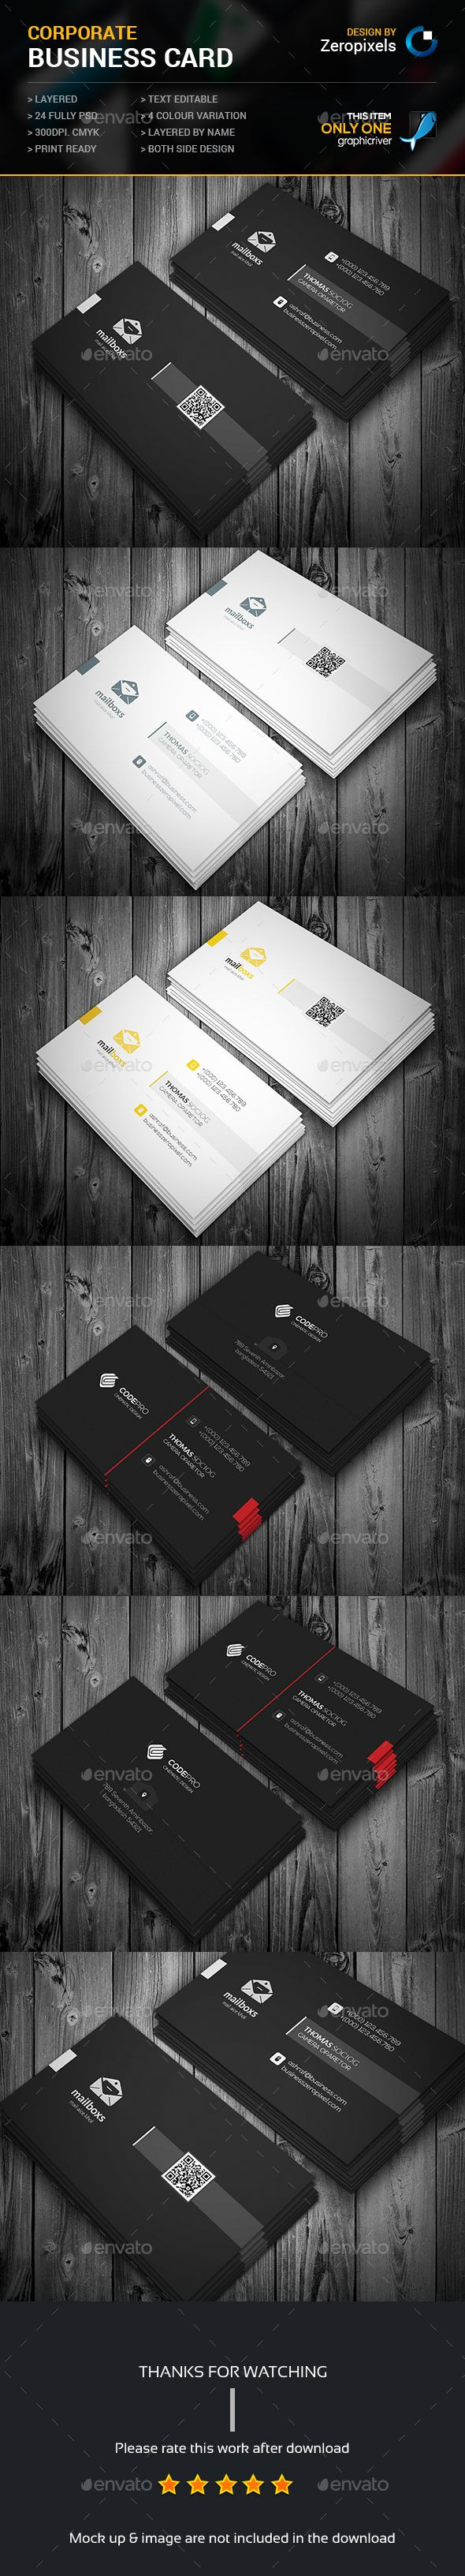 Simply Business Card Bundle